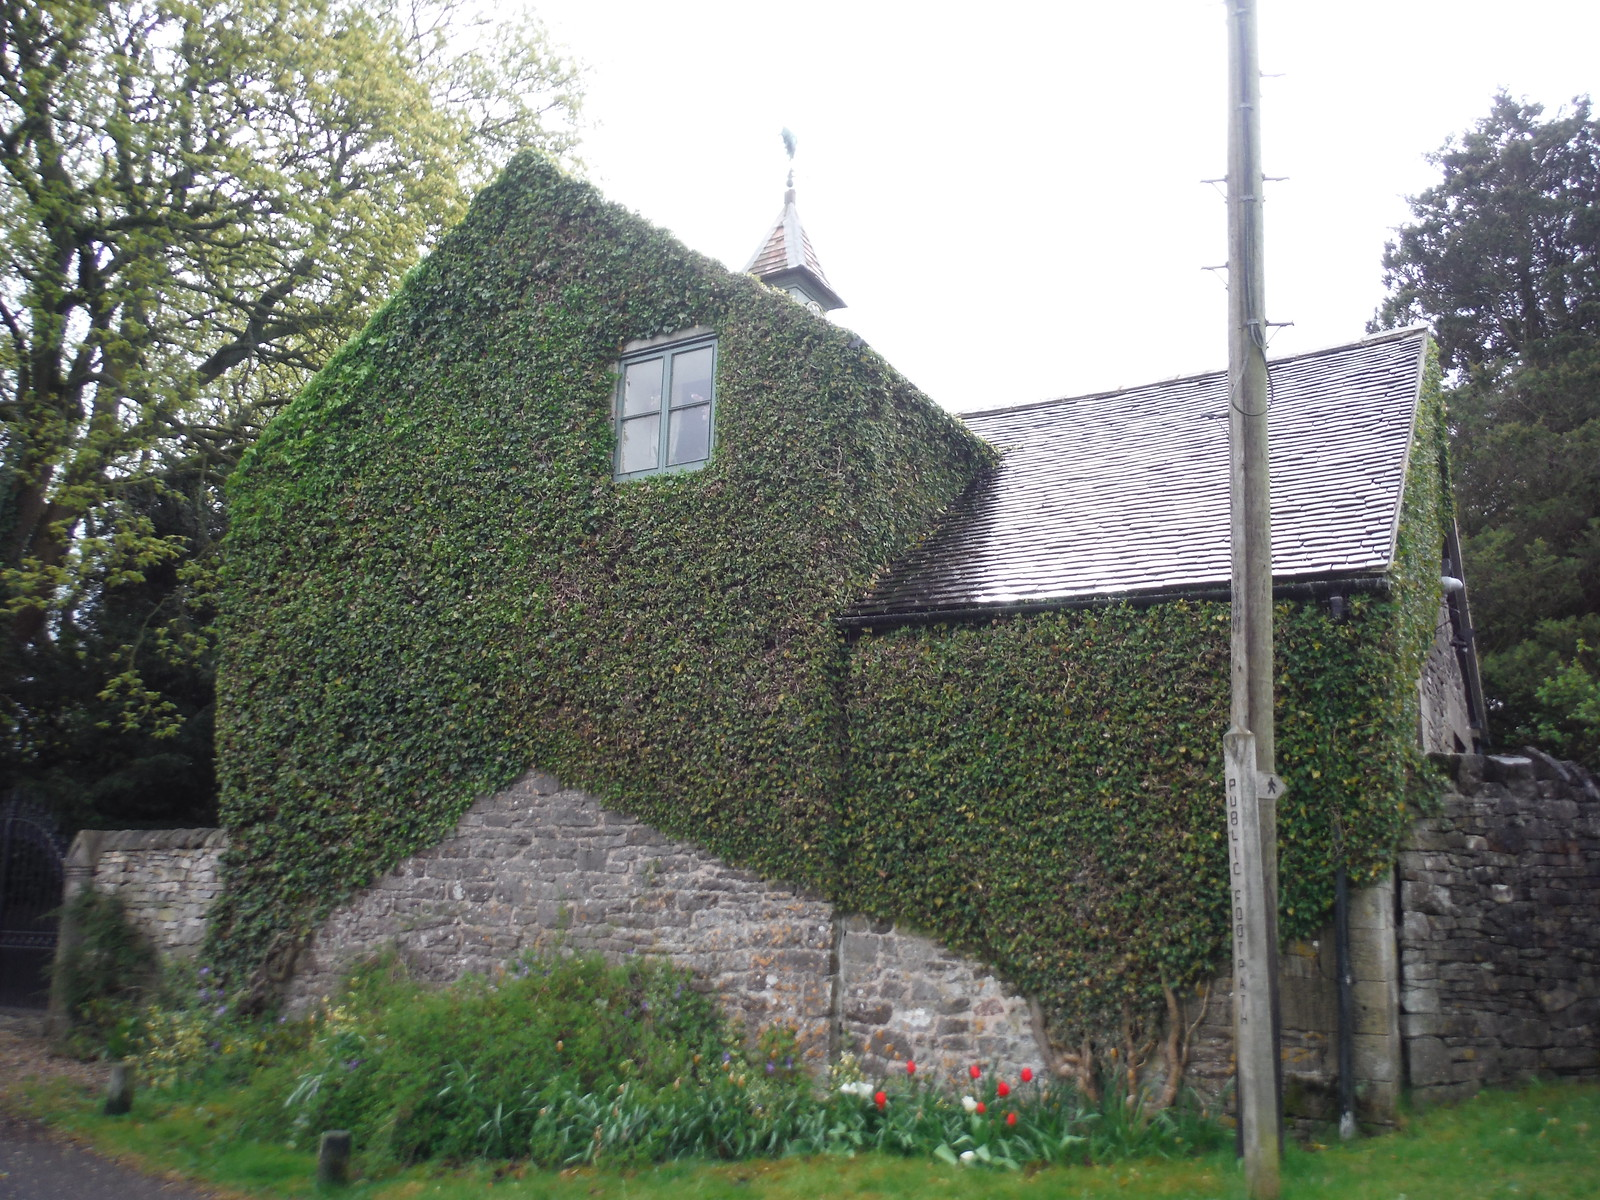 House in Thorpe SWC Walk 326 - Dovedale (Ashbourne Circular)